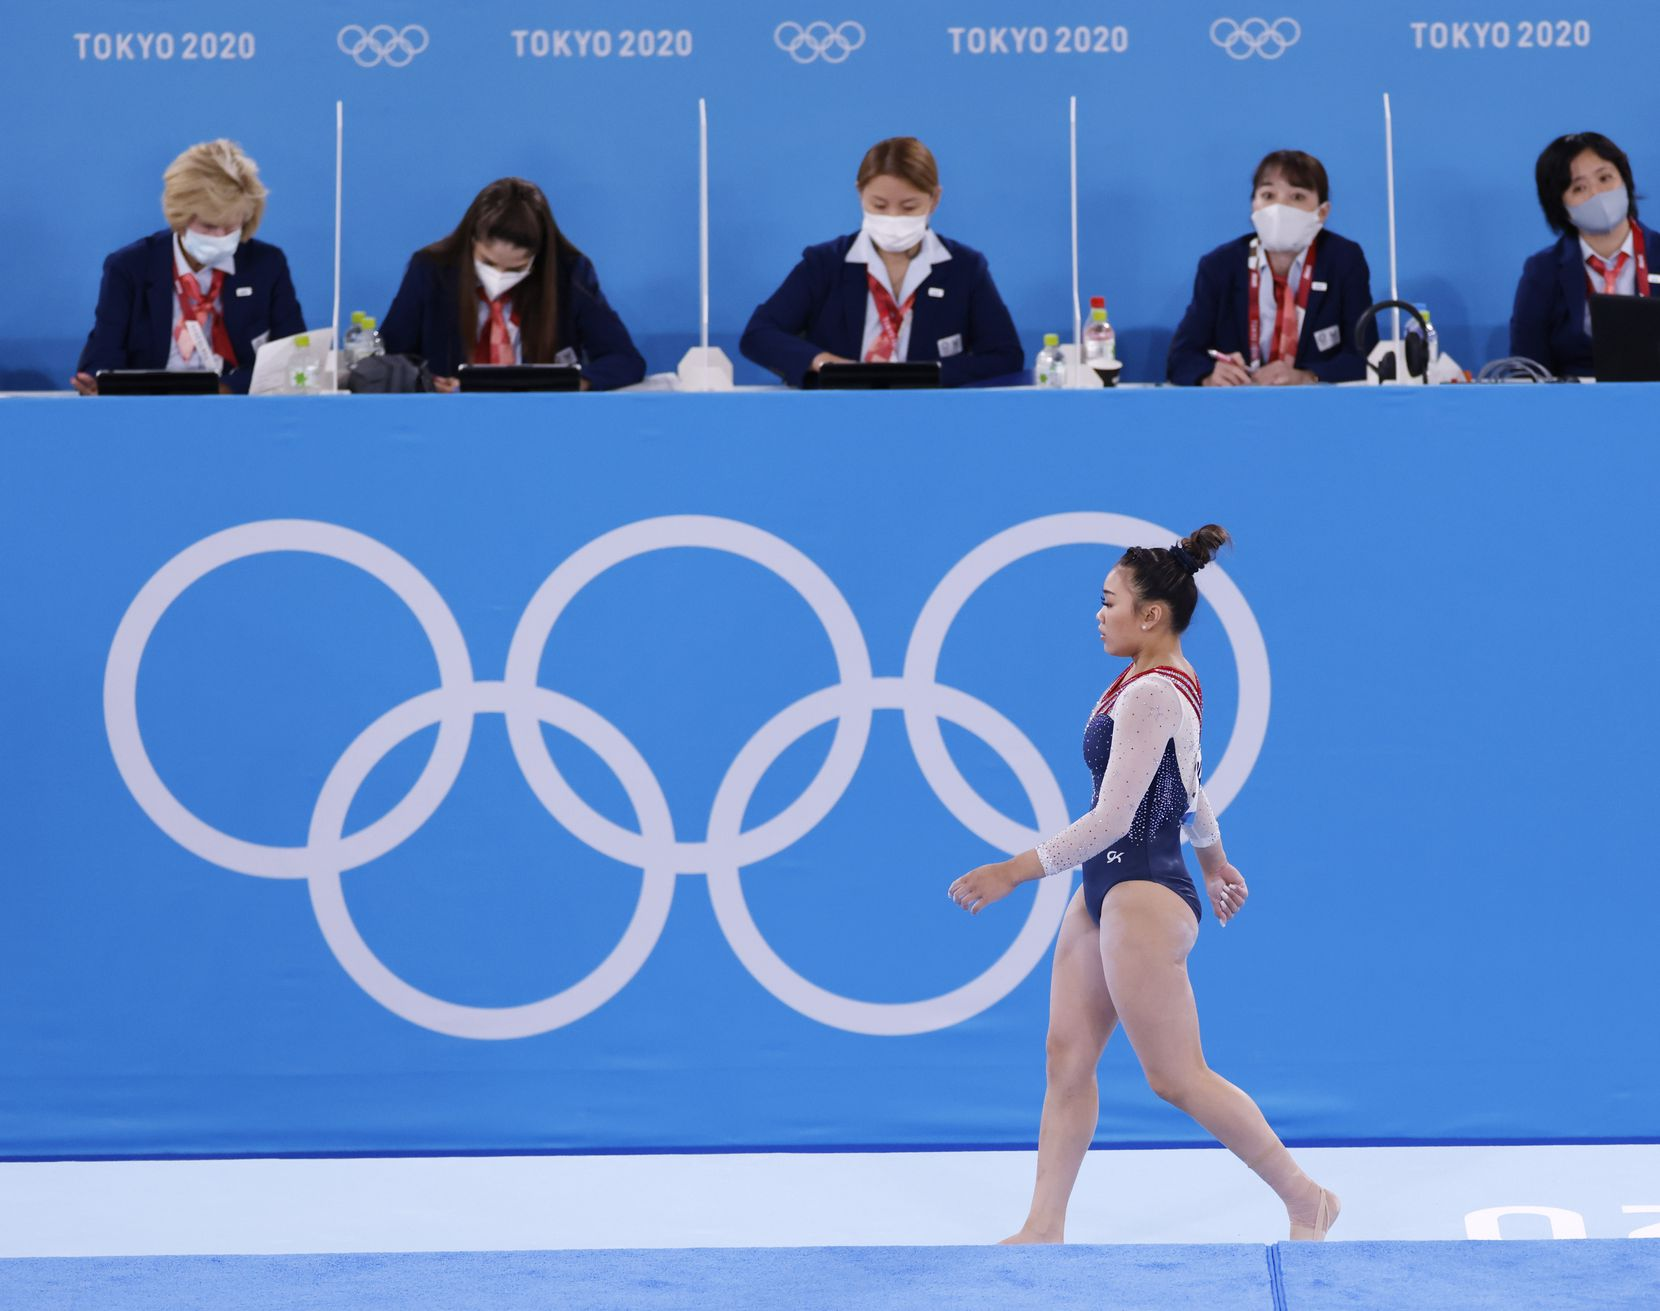 USA's Sunisa Lee makes her way off the floor after completing her routine during the women's all-around final at the postponed 2020 Tokyo Olympics at Ariake Gymnastics Centre, on Thursday, July 29, 2021, in Tokyo, Japan. (Vernon Bryant/The Dallas Morning News)